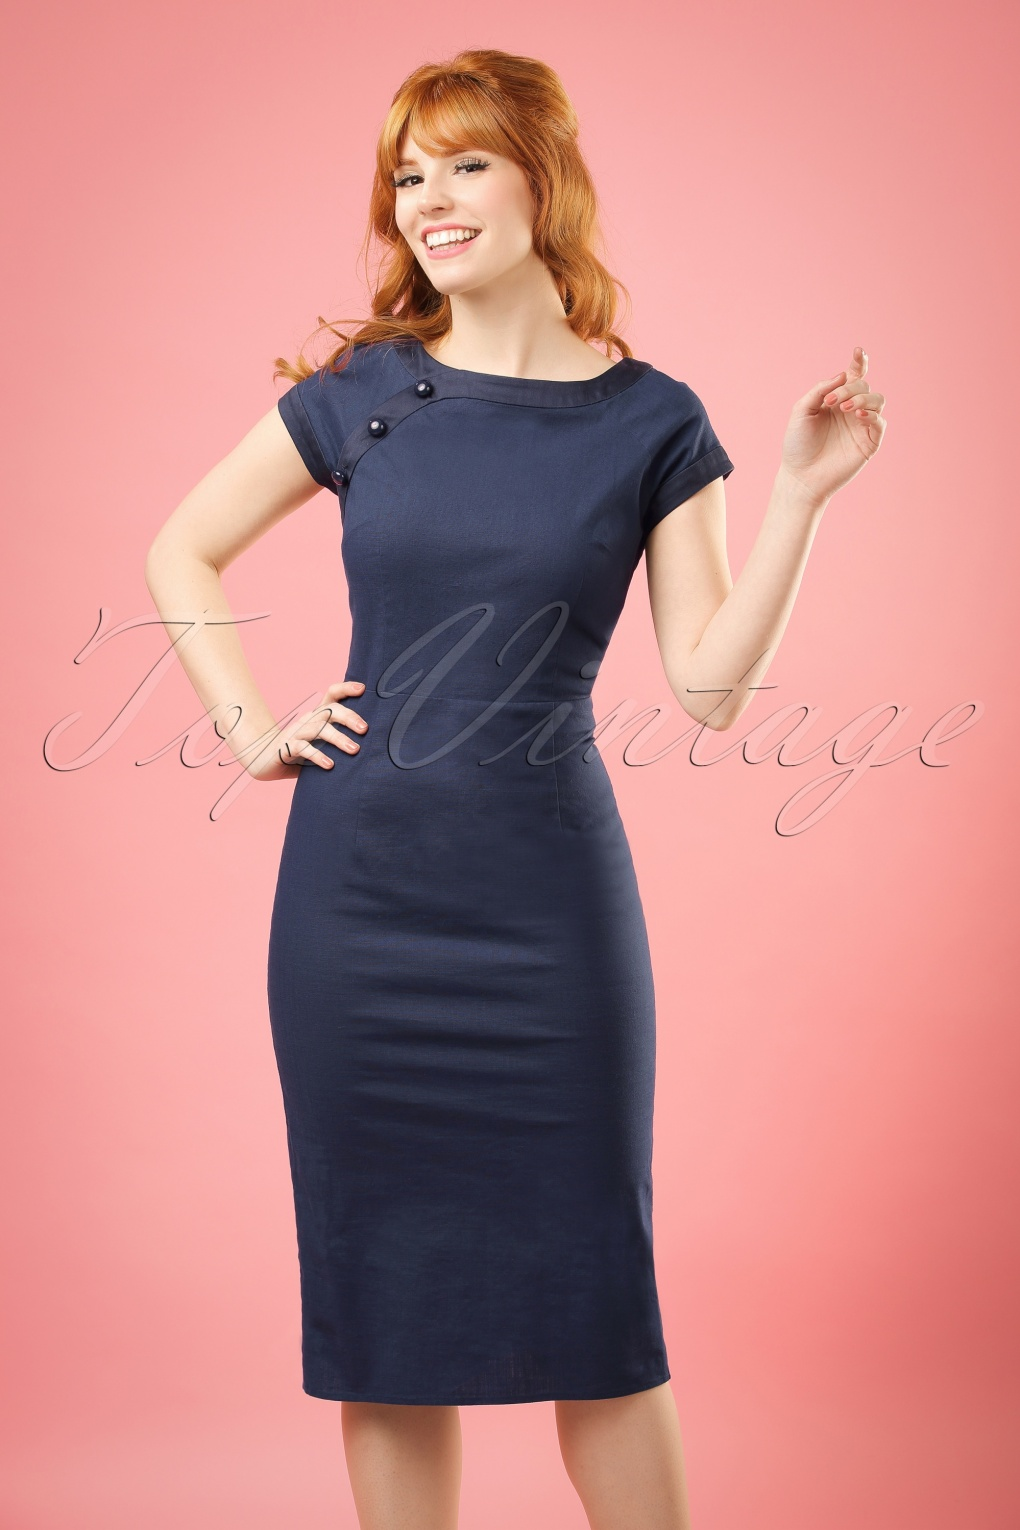 Wiggle Dresses | Pencil Dresses 50s Nyoko Fishtail Pencil Dress in Navy £53.05 AT vintagedancer.com